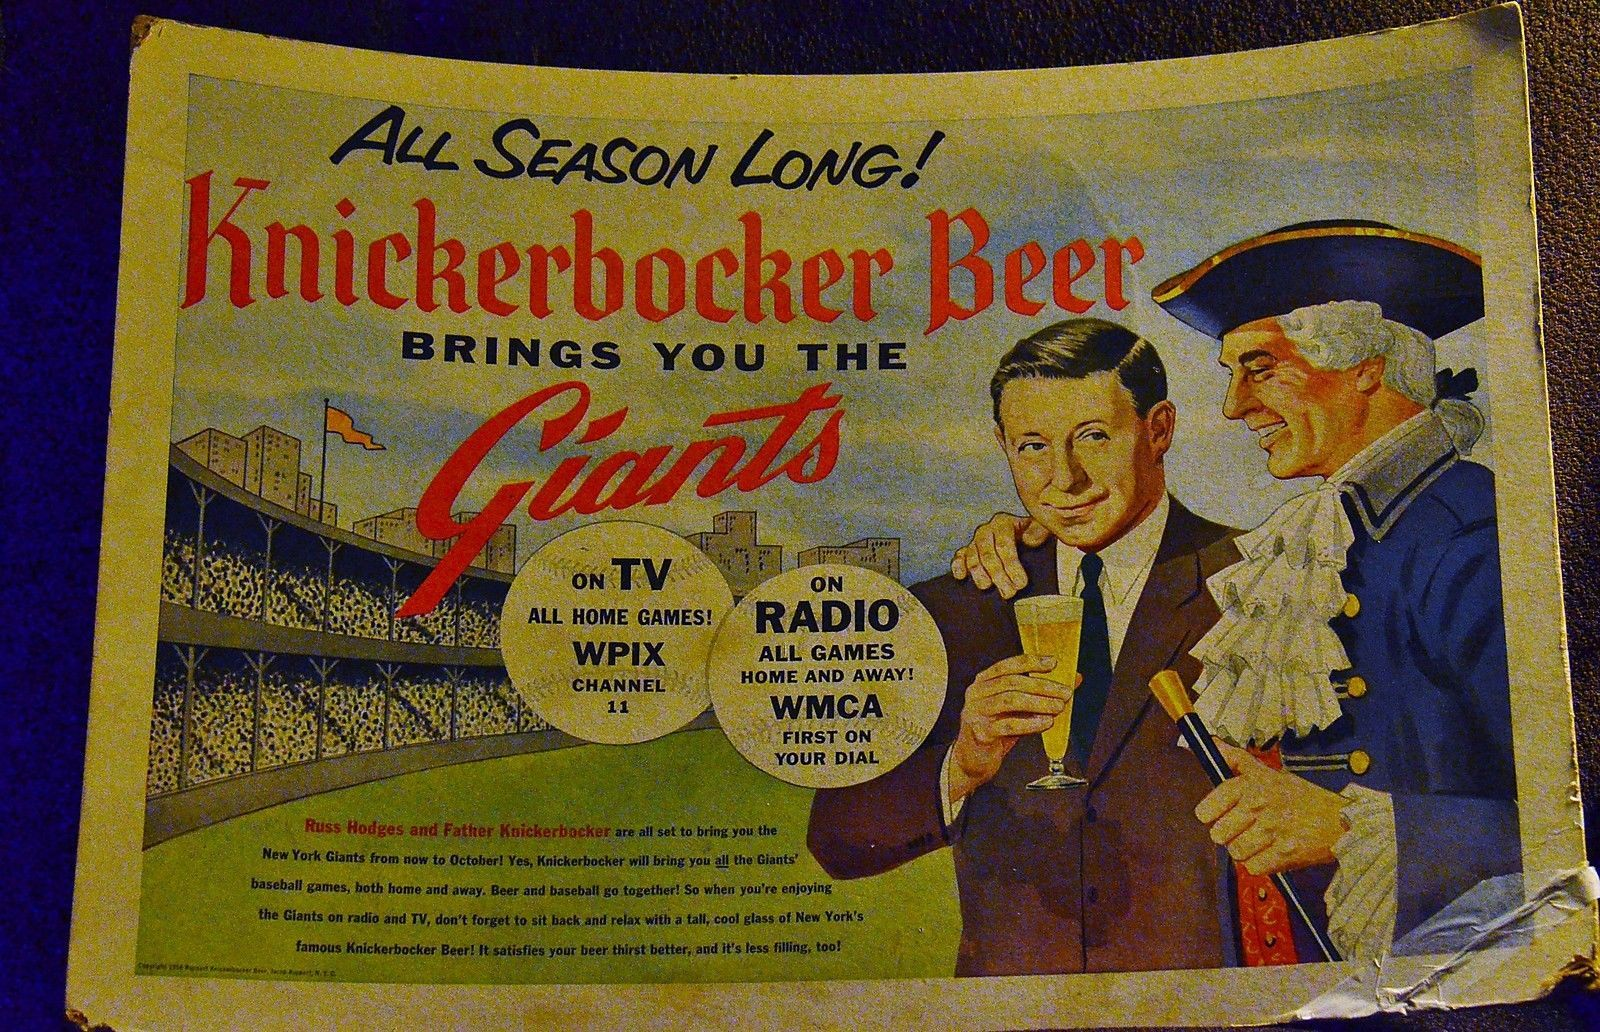 ORIGINAL ADVERTISING SIGN - New York Giants, Knickerbocker Beer, Russ Hodges